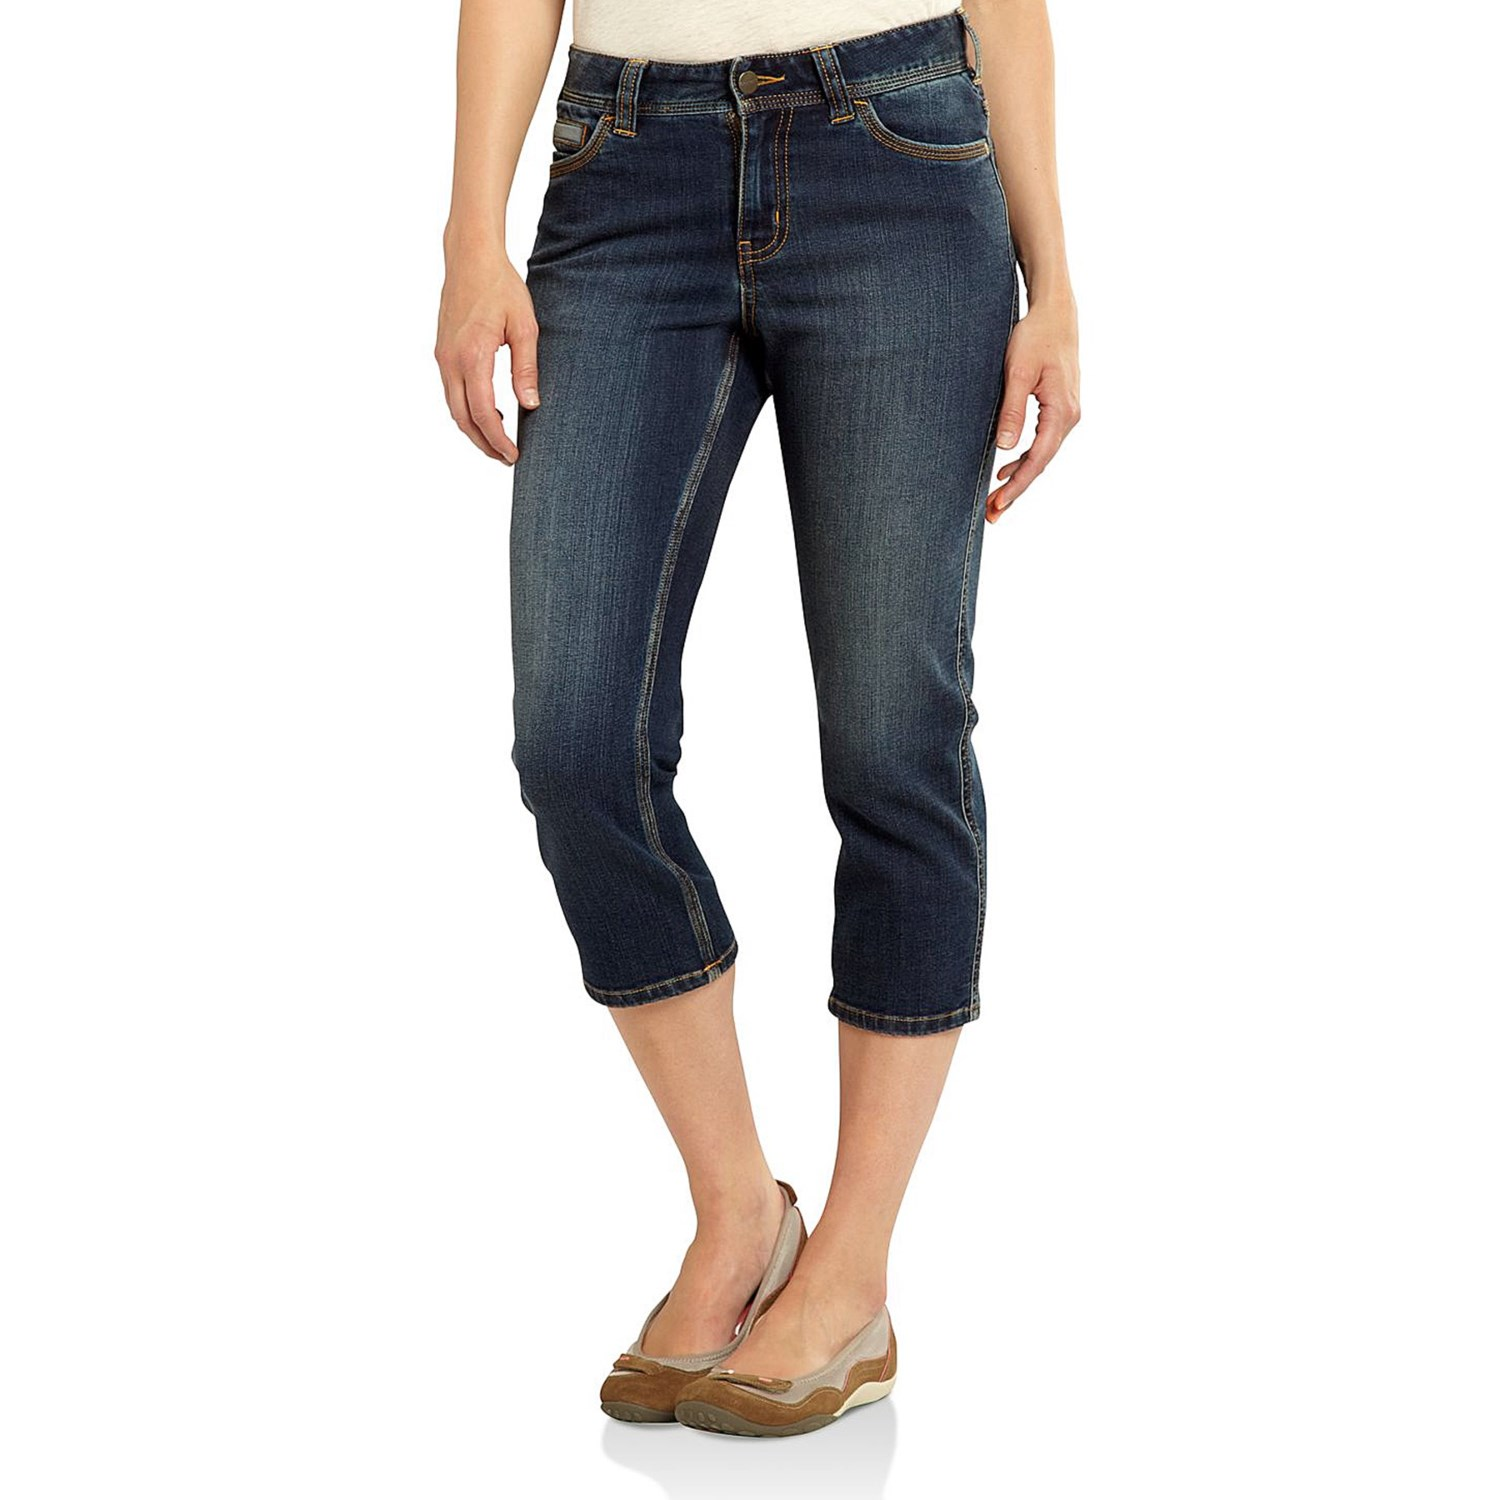 Shop women's cropped pants at humorrmundiall.ga Discover a stylish selection of the latest brand name and designer fashions all at a great value.